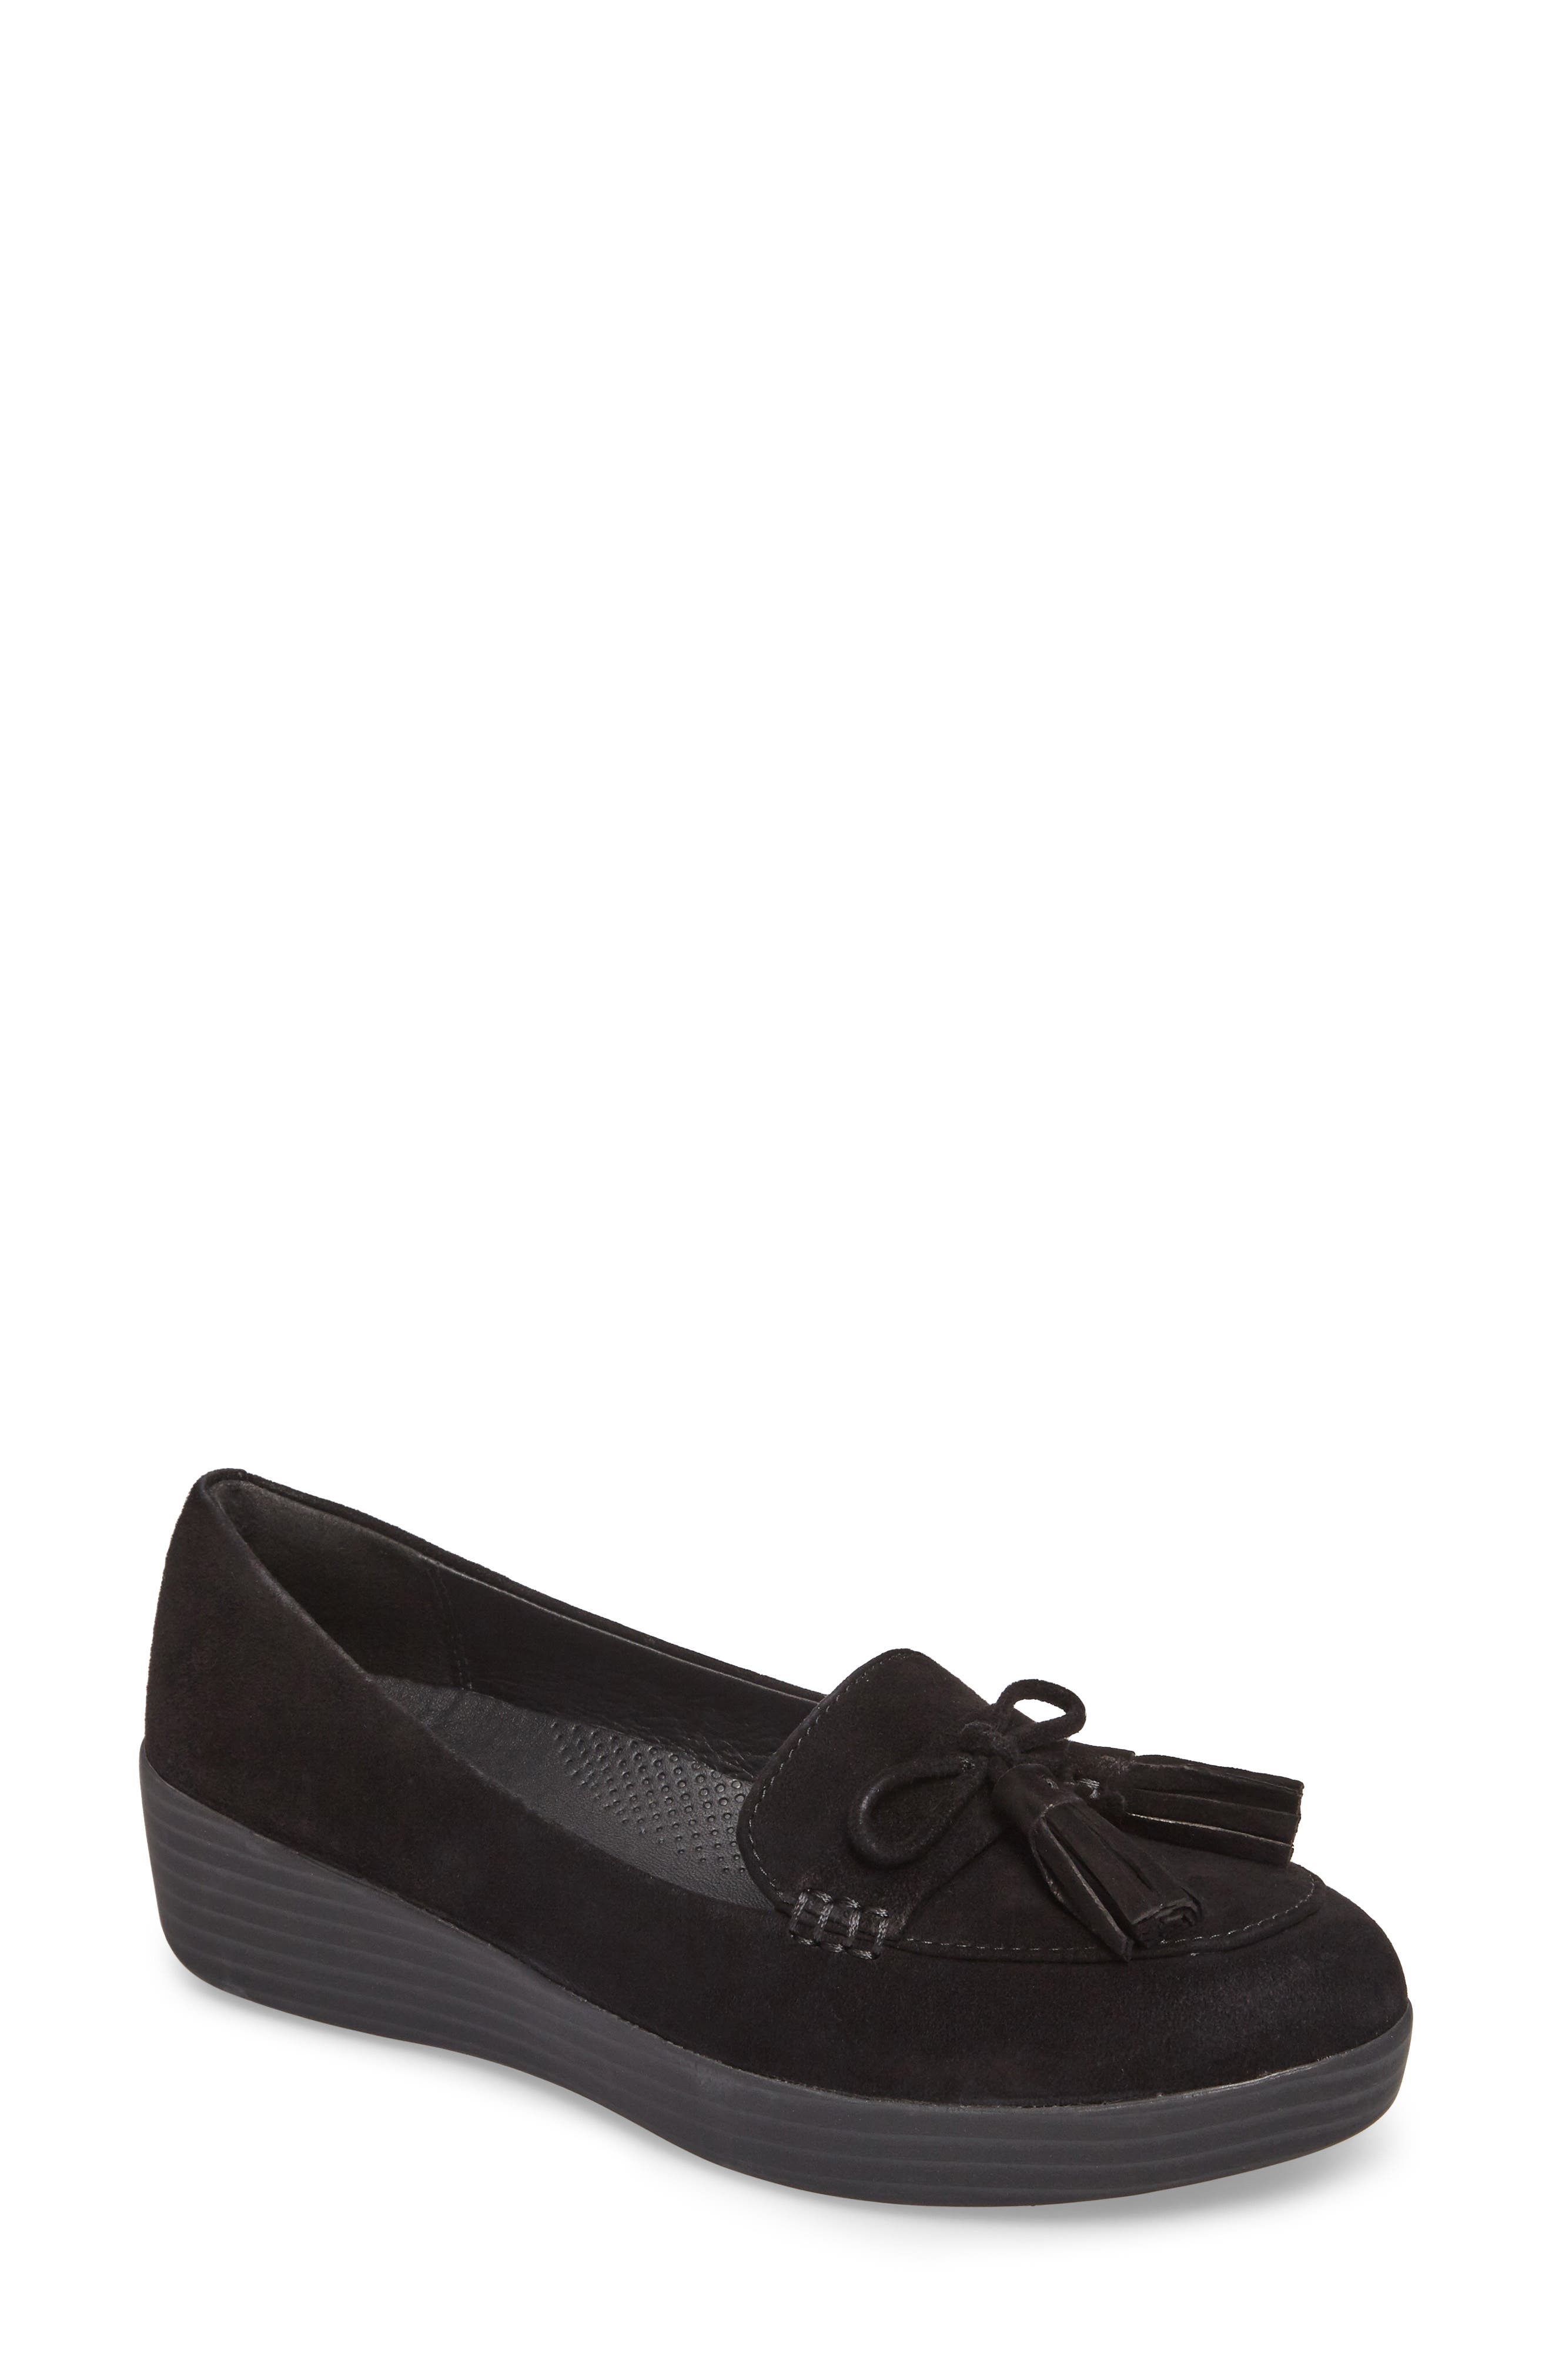 Tassel Bow Sneakerloafer<sup>™</sup> Water Repellent Flat,                         Main,                         color, All Black